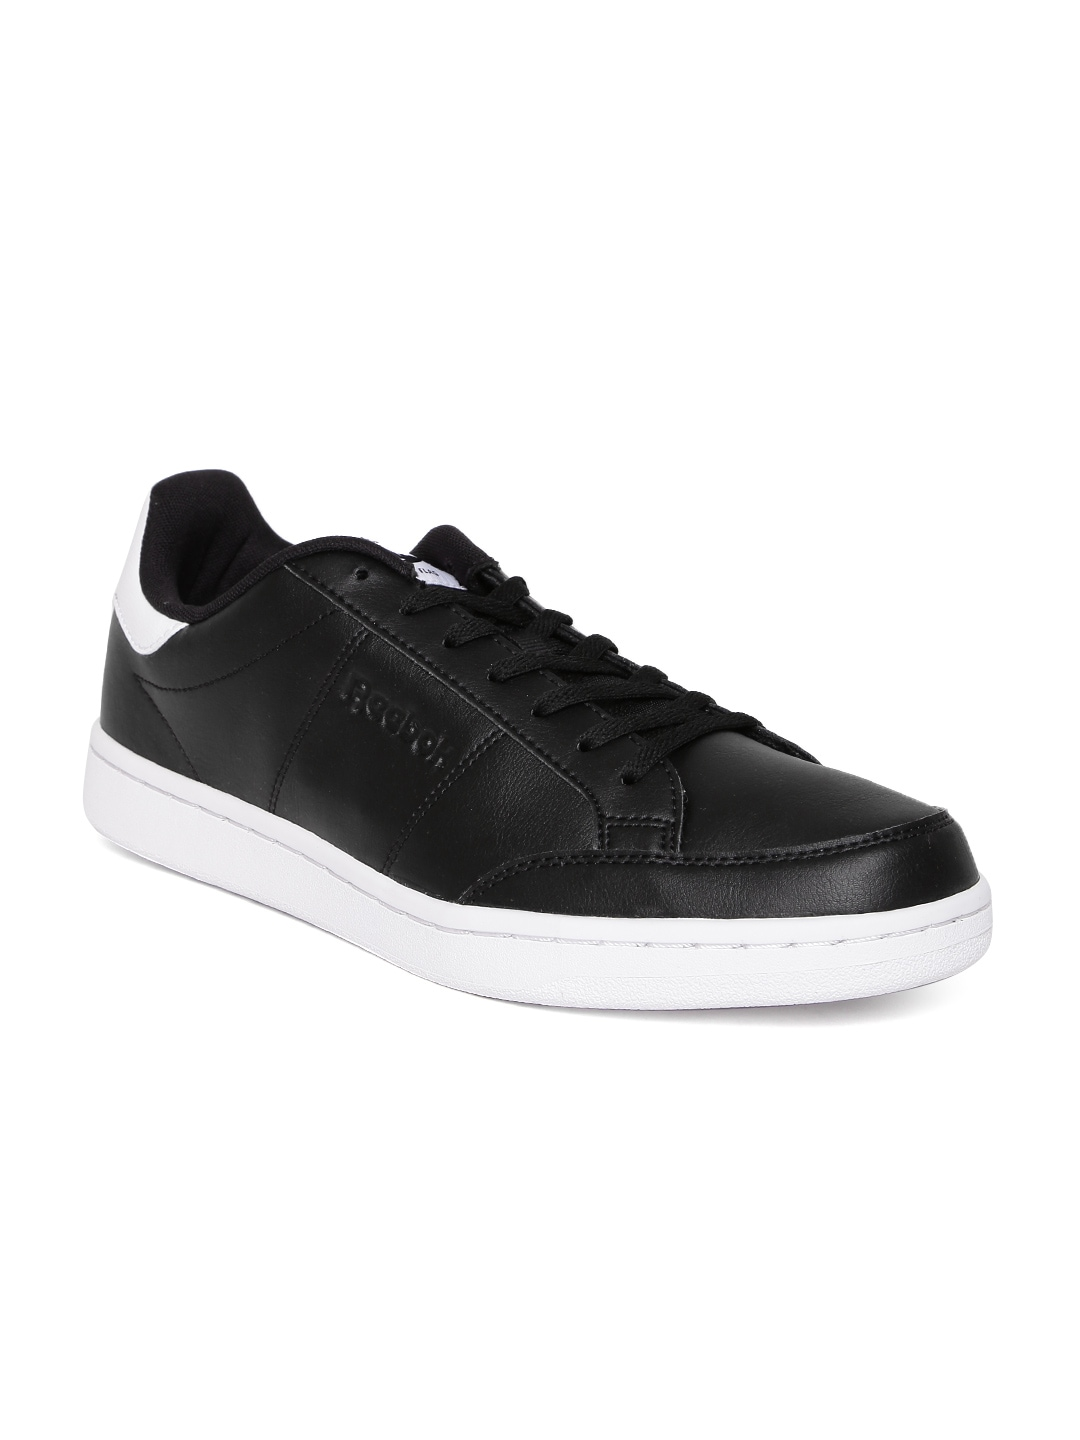 94c4a76cbf4 Reebok Casual Shoes - Buy Reebok Casual Shoes Online in India